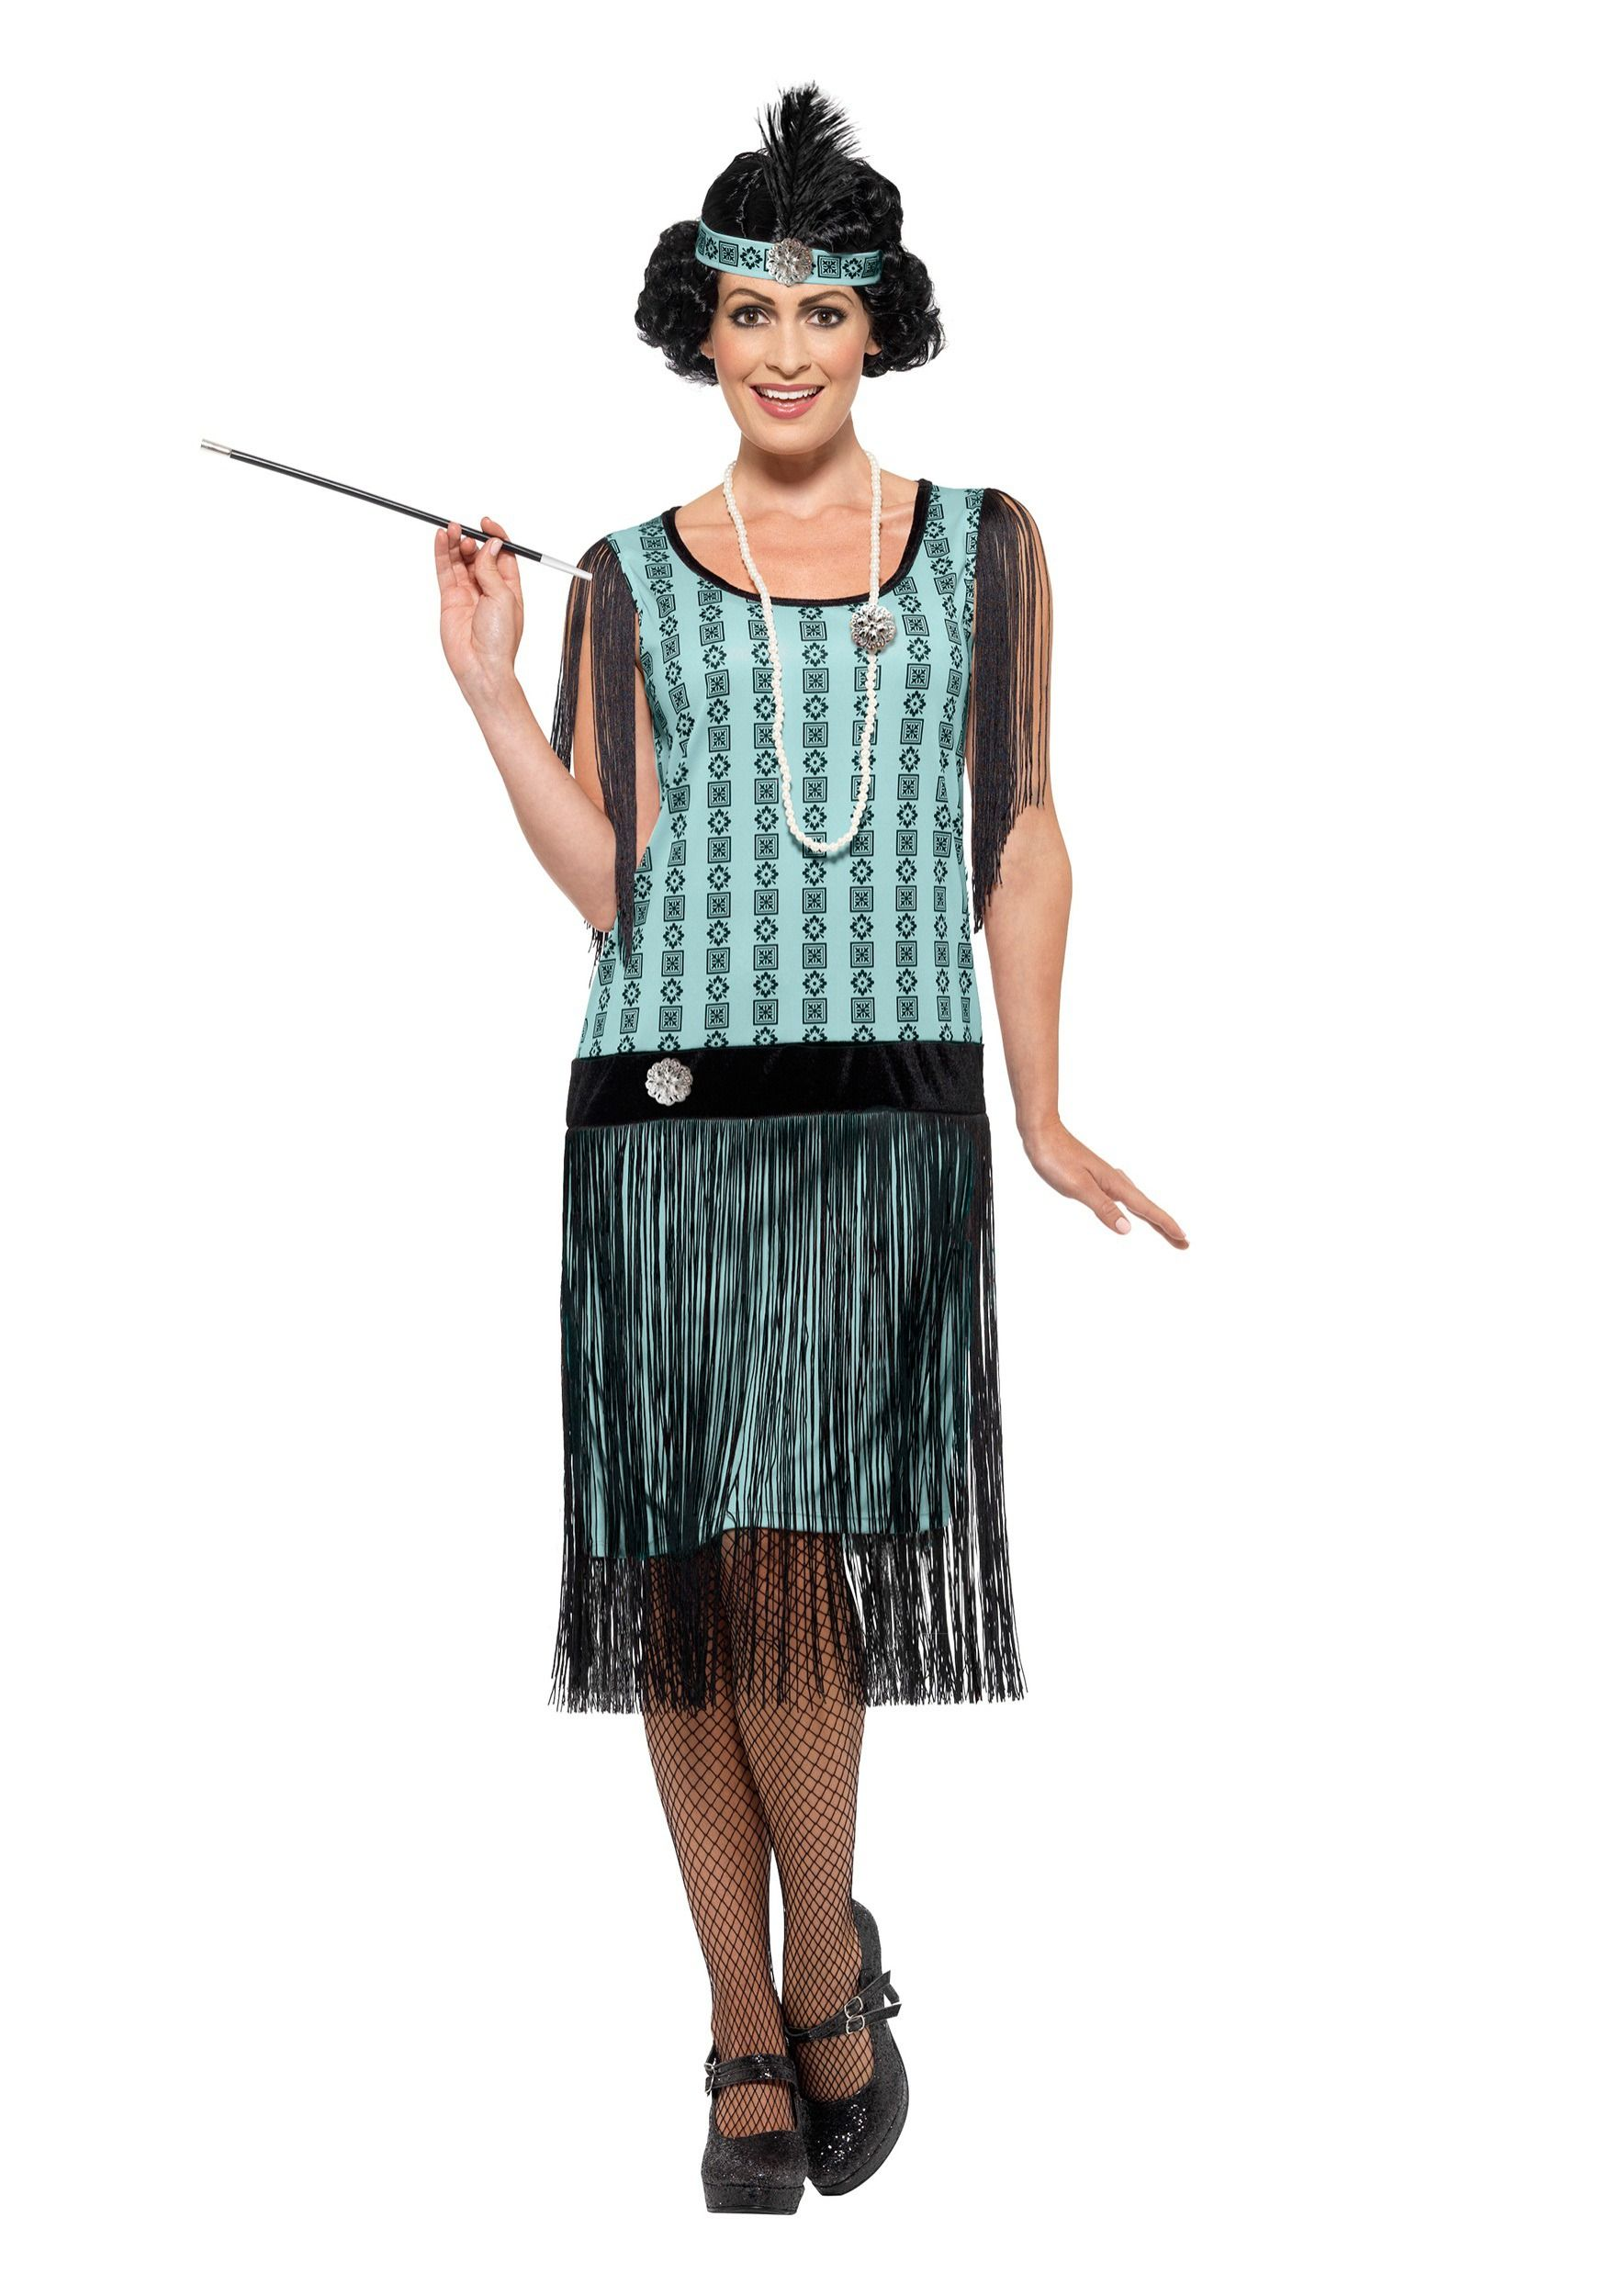 14b9c5b5e30 ... Plus Size Halloween Costumes for Women. 1920s Dress